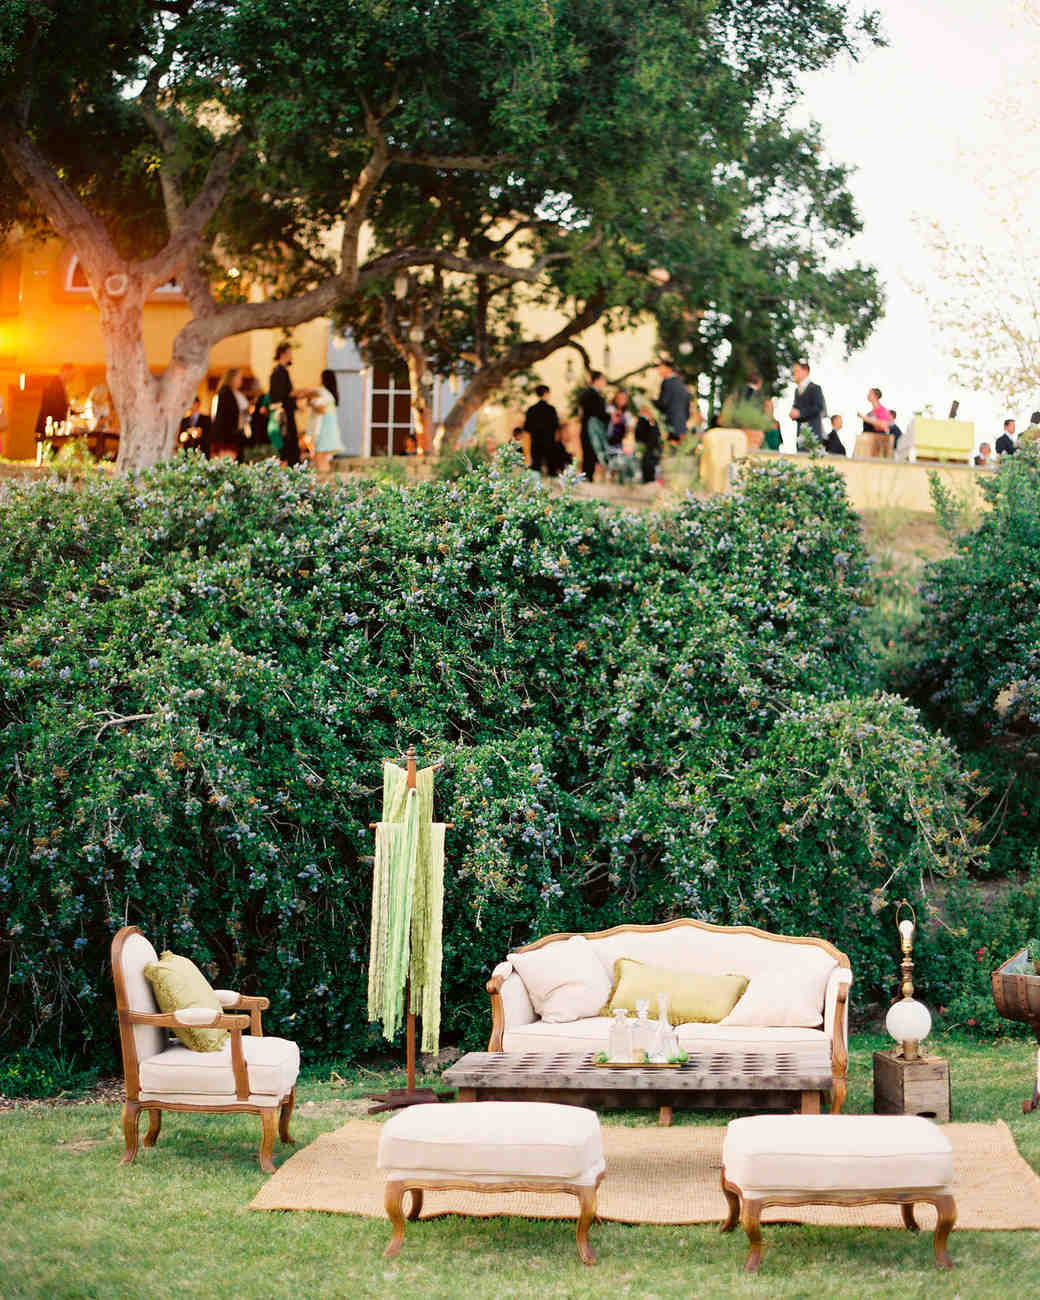 Garden Weddings Ideas Top 50 real wedding ideas to steal martha stewart weddings bring the indoors out workwithnaturefo